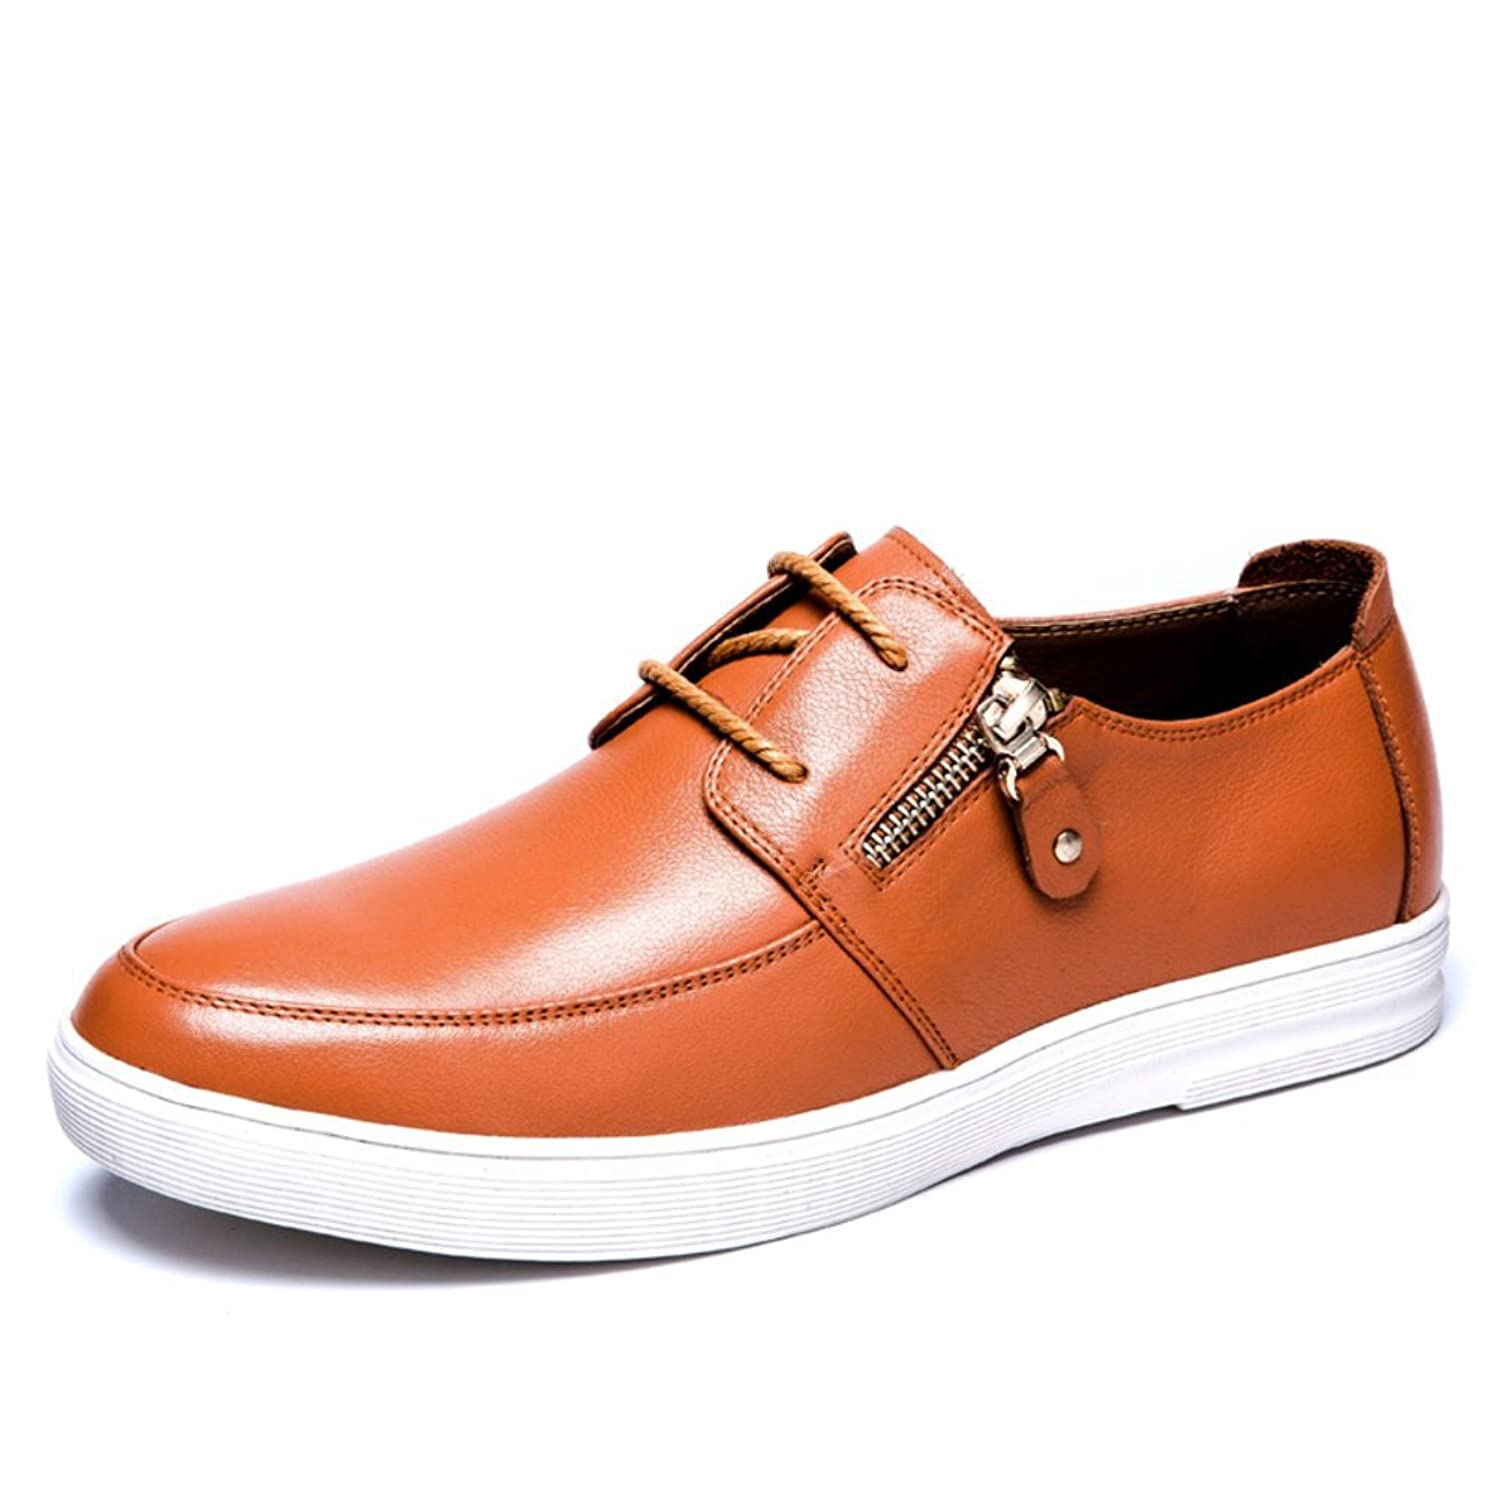 2016Leather shoes to help low/Daily lace shoes/Wear comfortable shoes/Men's casual shoes